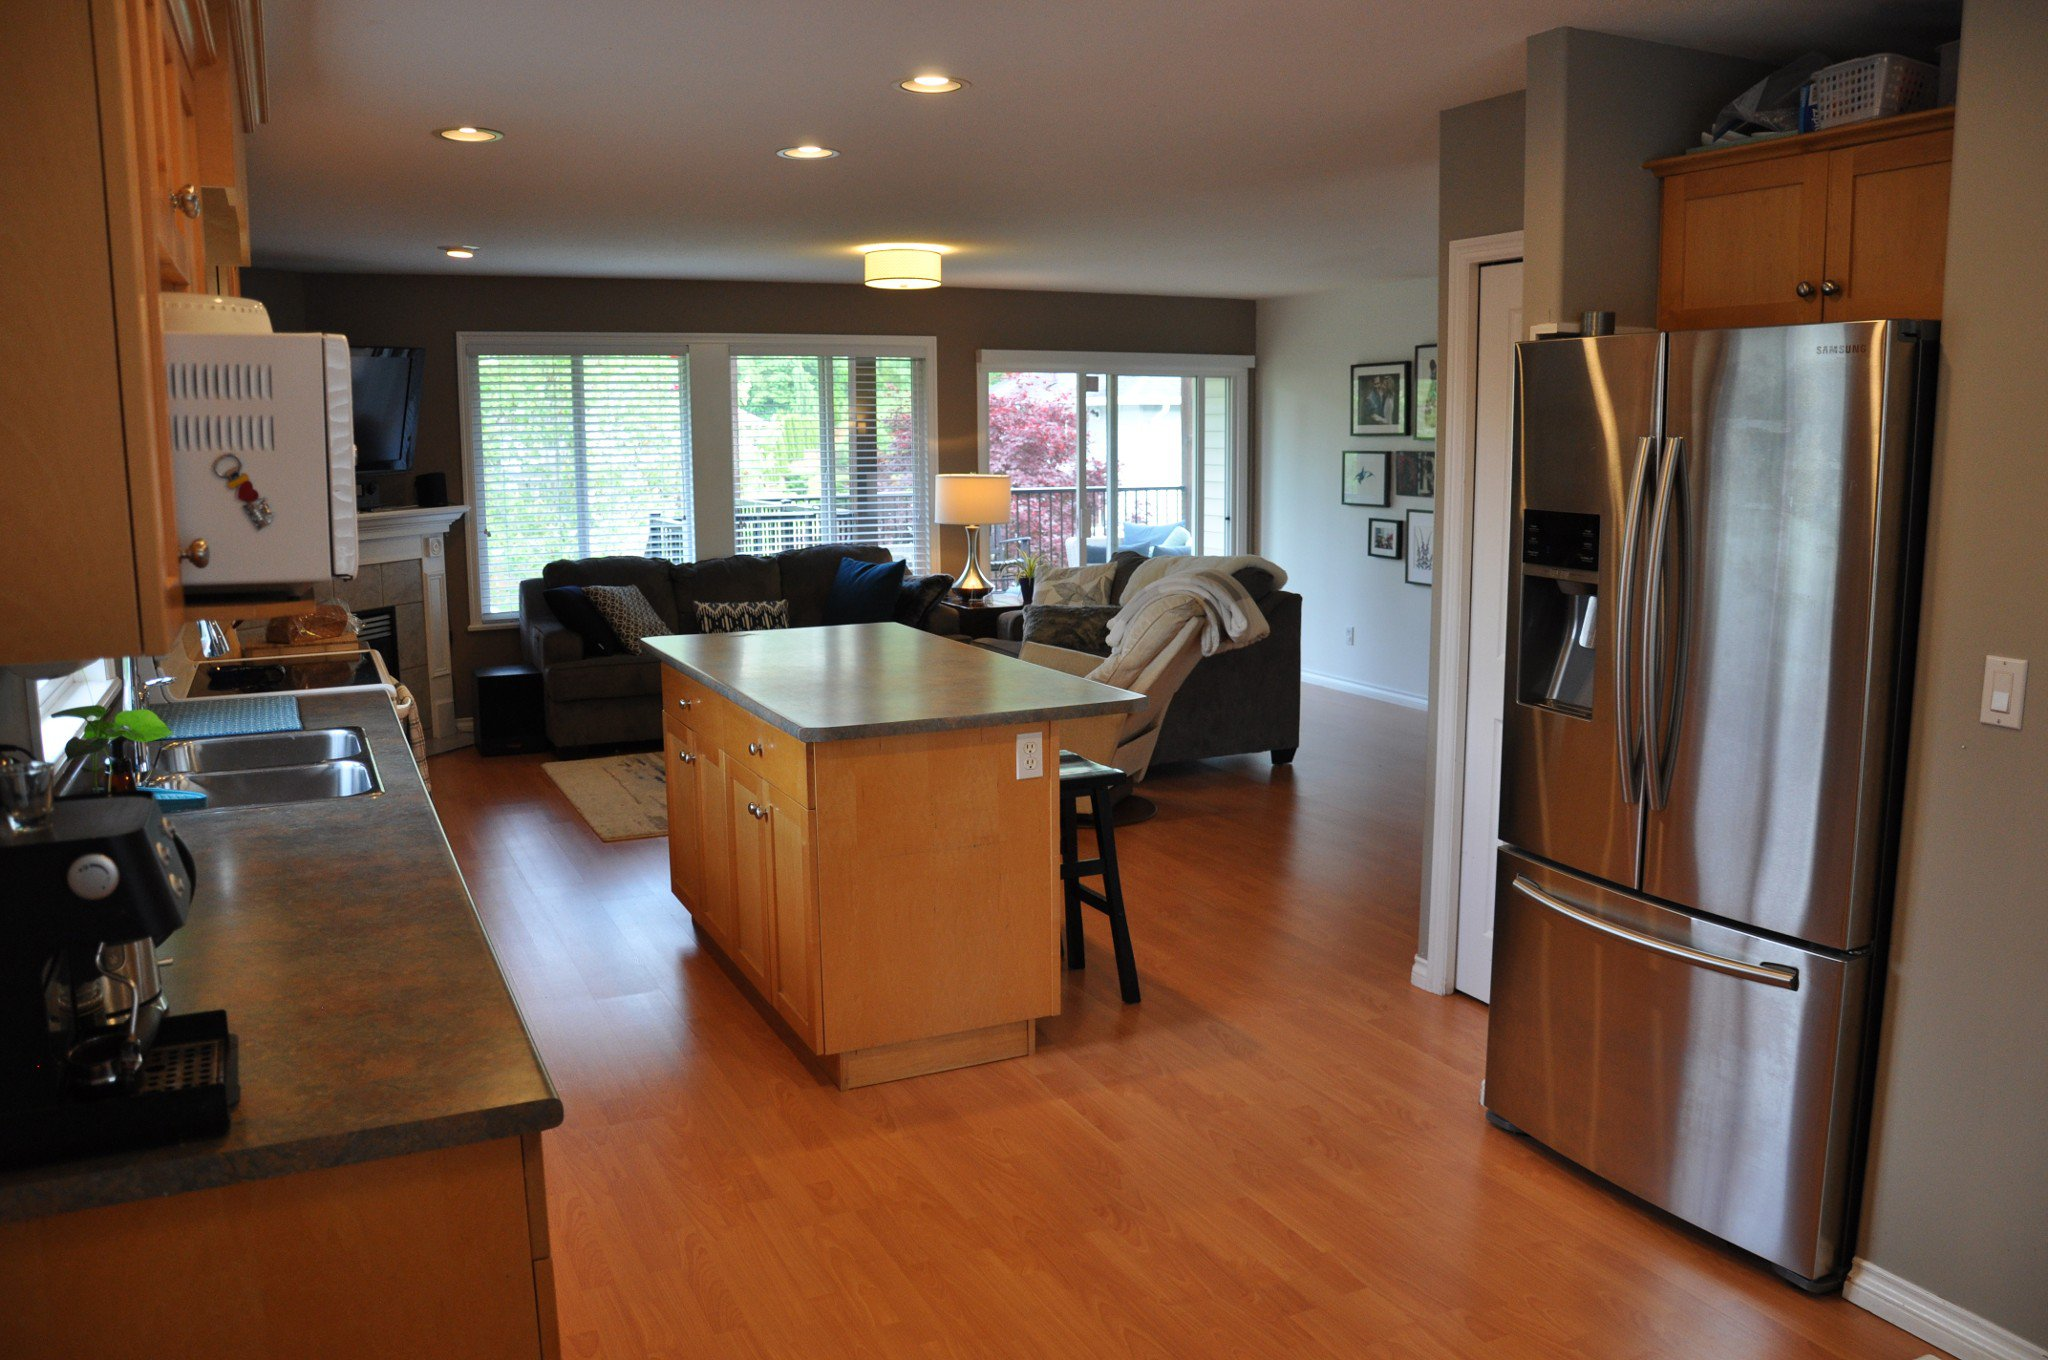 Photo 4: Photos: 4076 Channel St. in Abbotsford: Abbotsford East House for rent